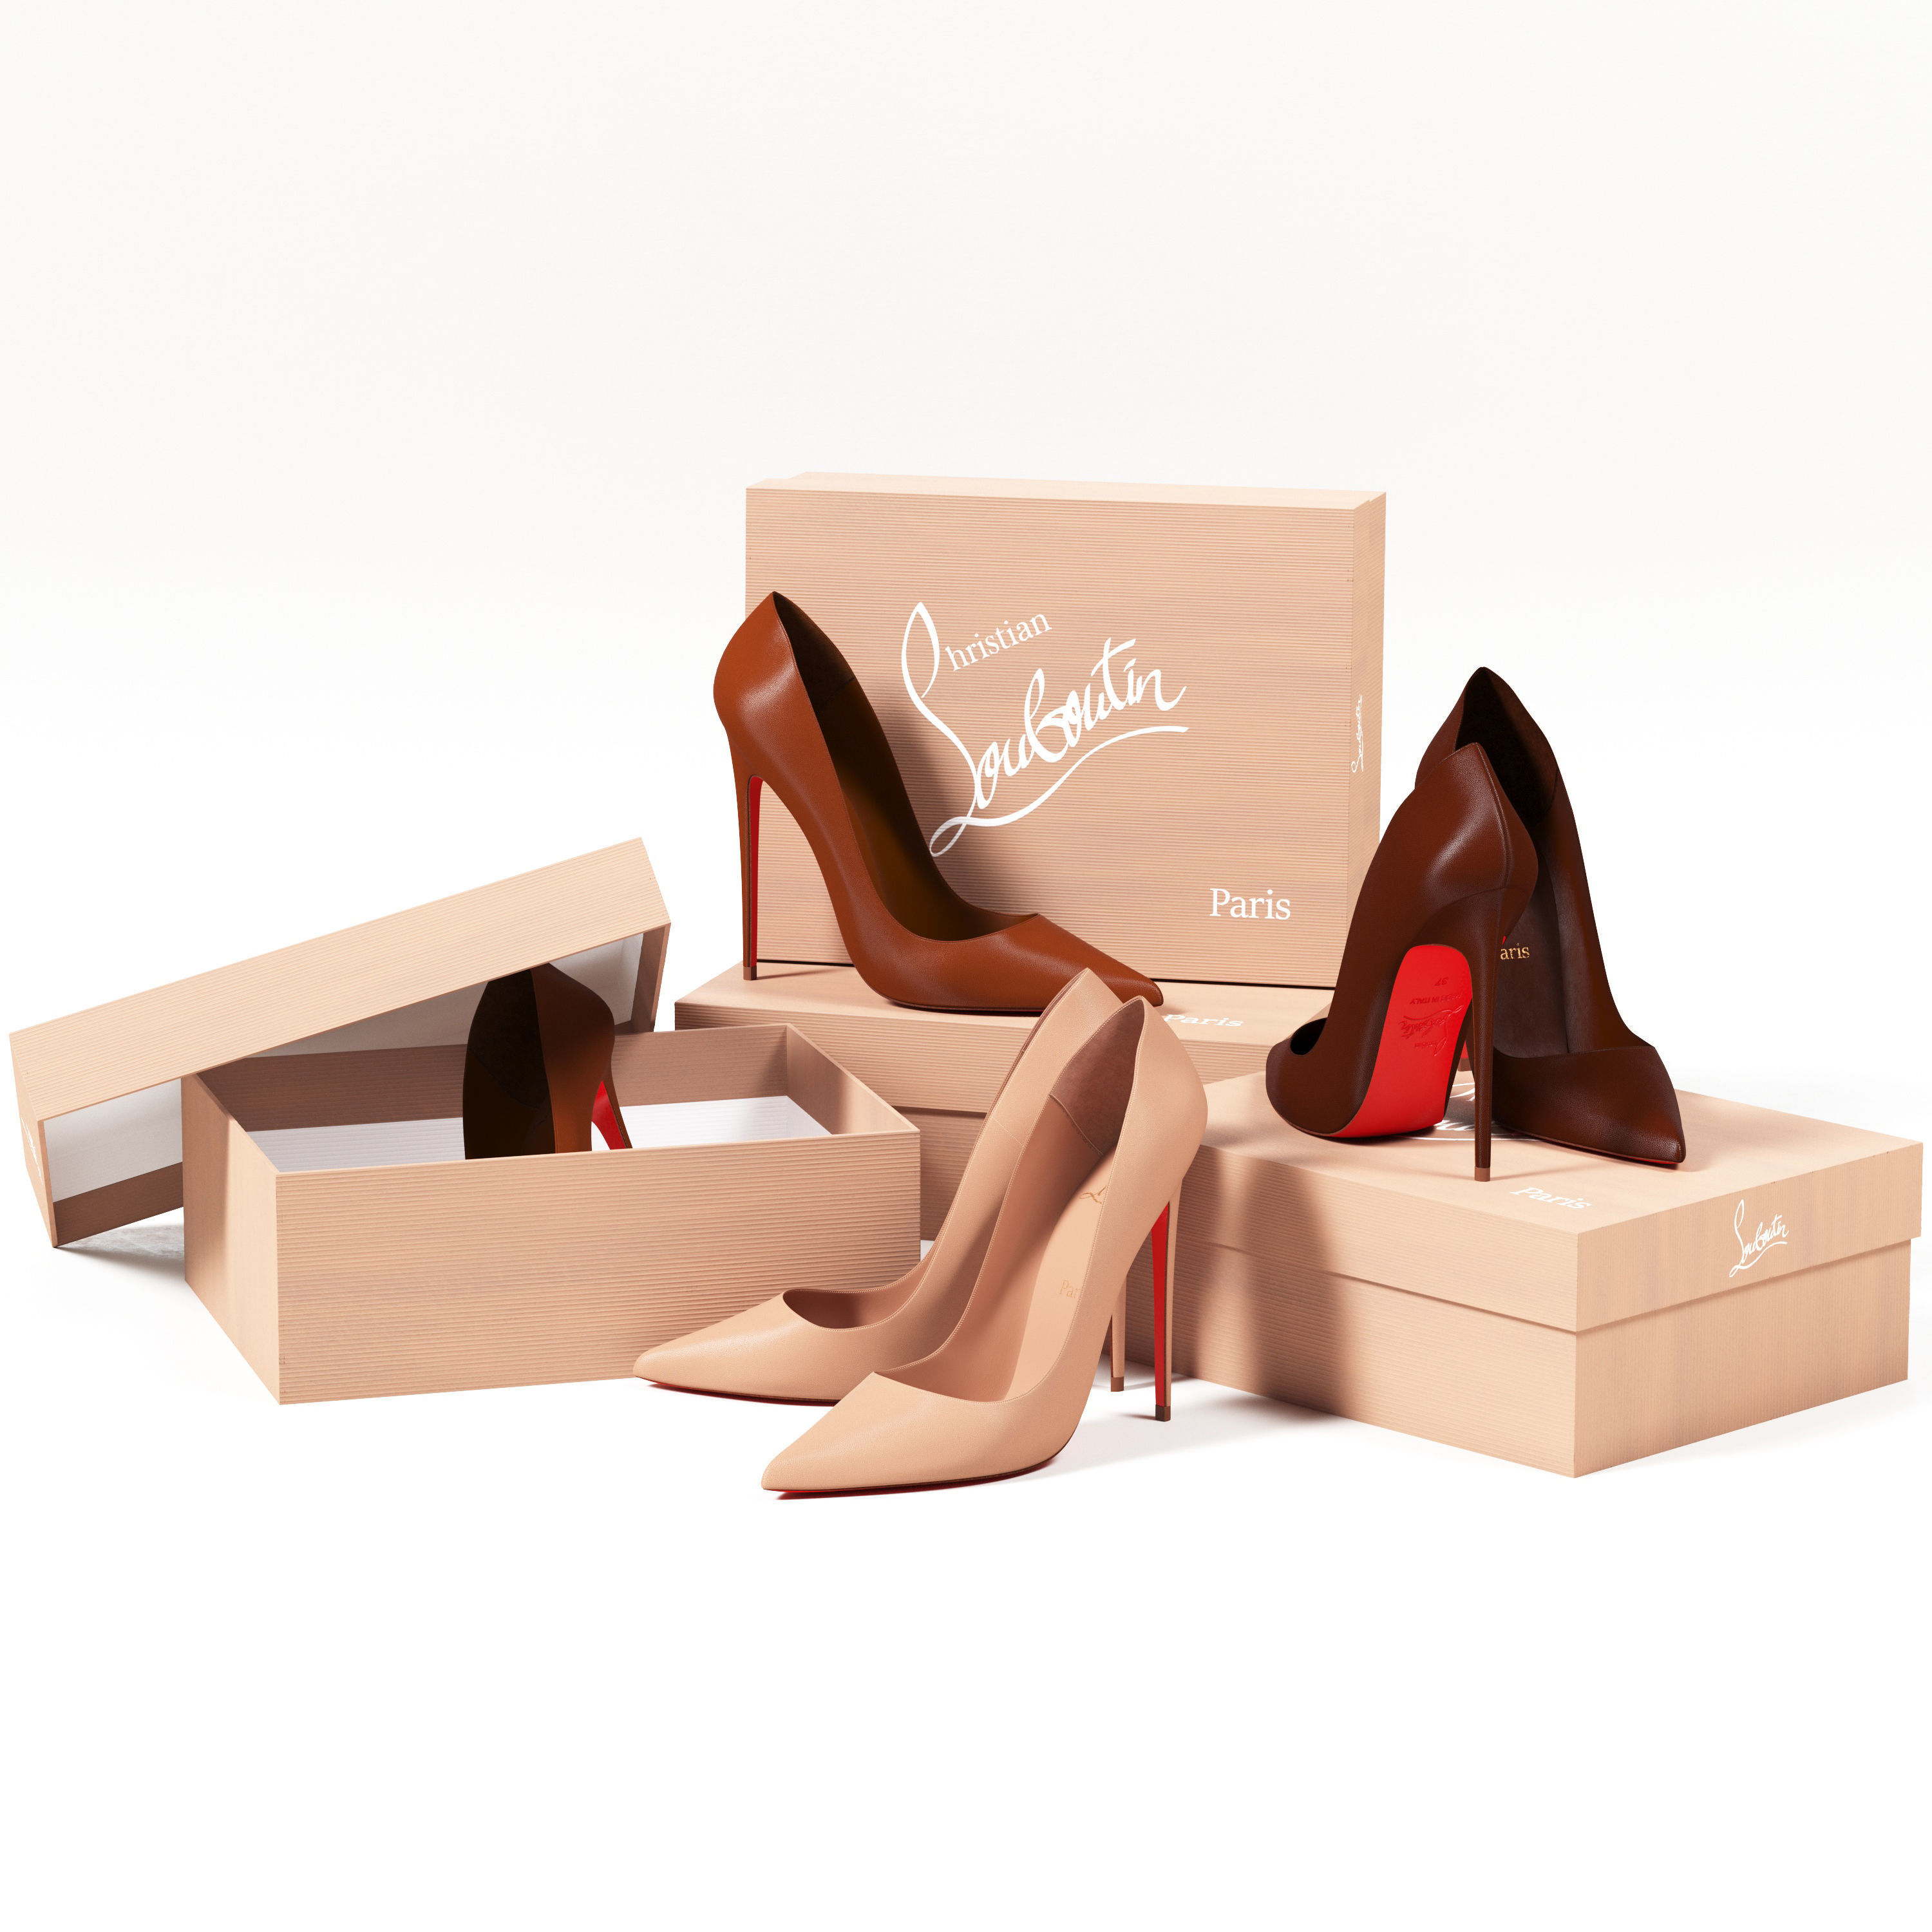 3D Christian Louboutin So Kate High Heels and Packaging